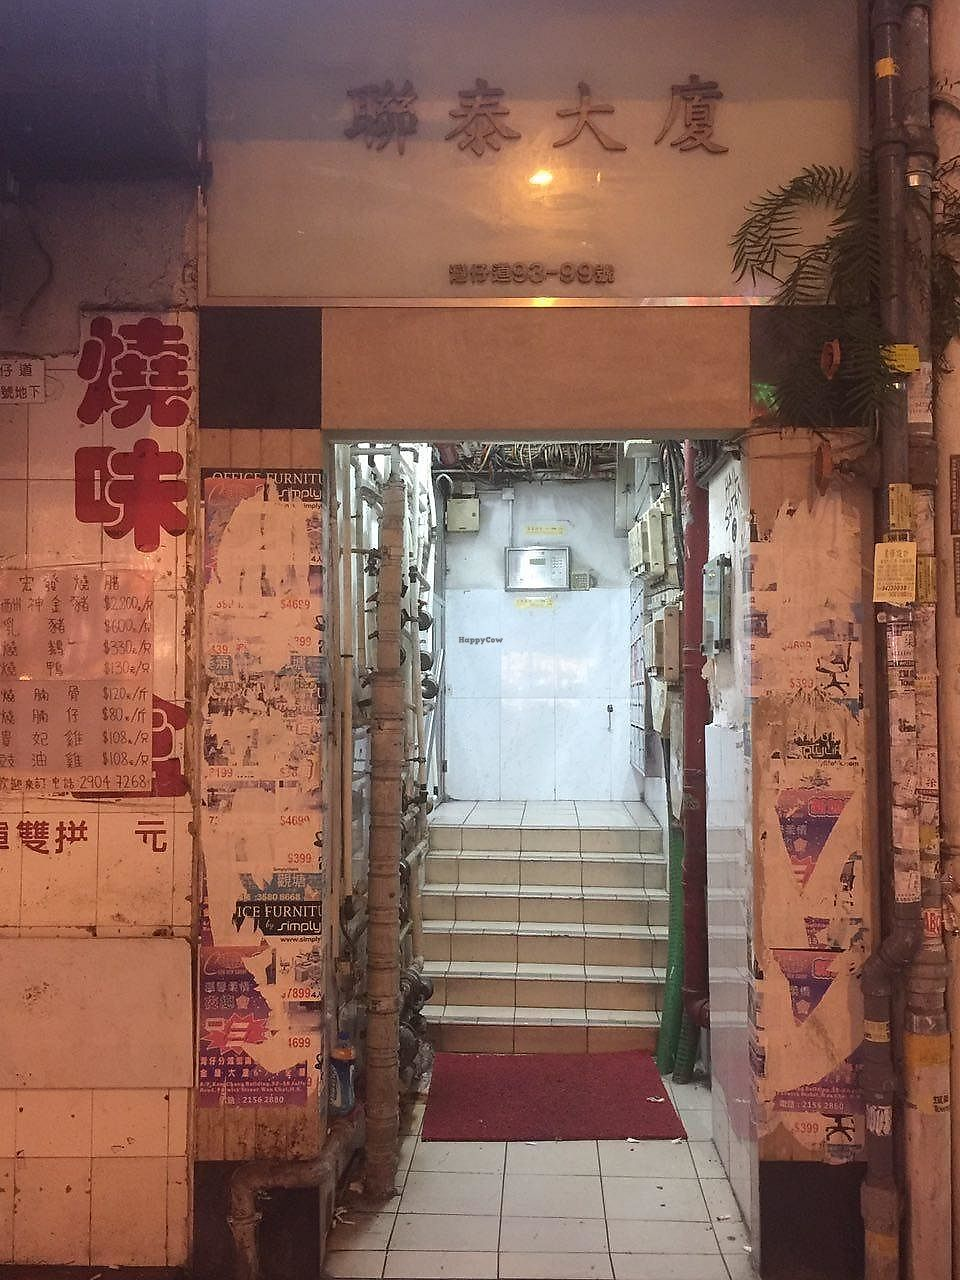 """Photo of Loving Hut - Wan Chai  by <a href=""""/members/profile/FlokiTheCat"""">FlokiTheCat</a> <br/>Entrance of the building <br/> June 29, 2017  - <a href='/contact/abuse/image/19570/274647'>Report</a>"""